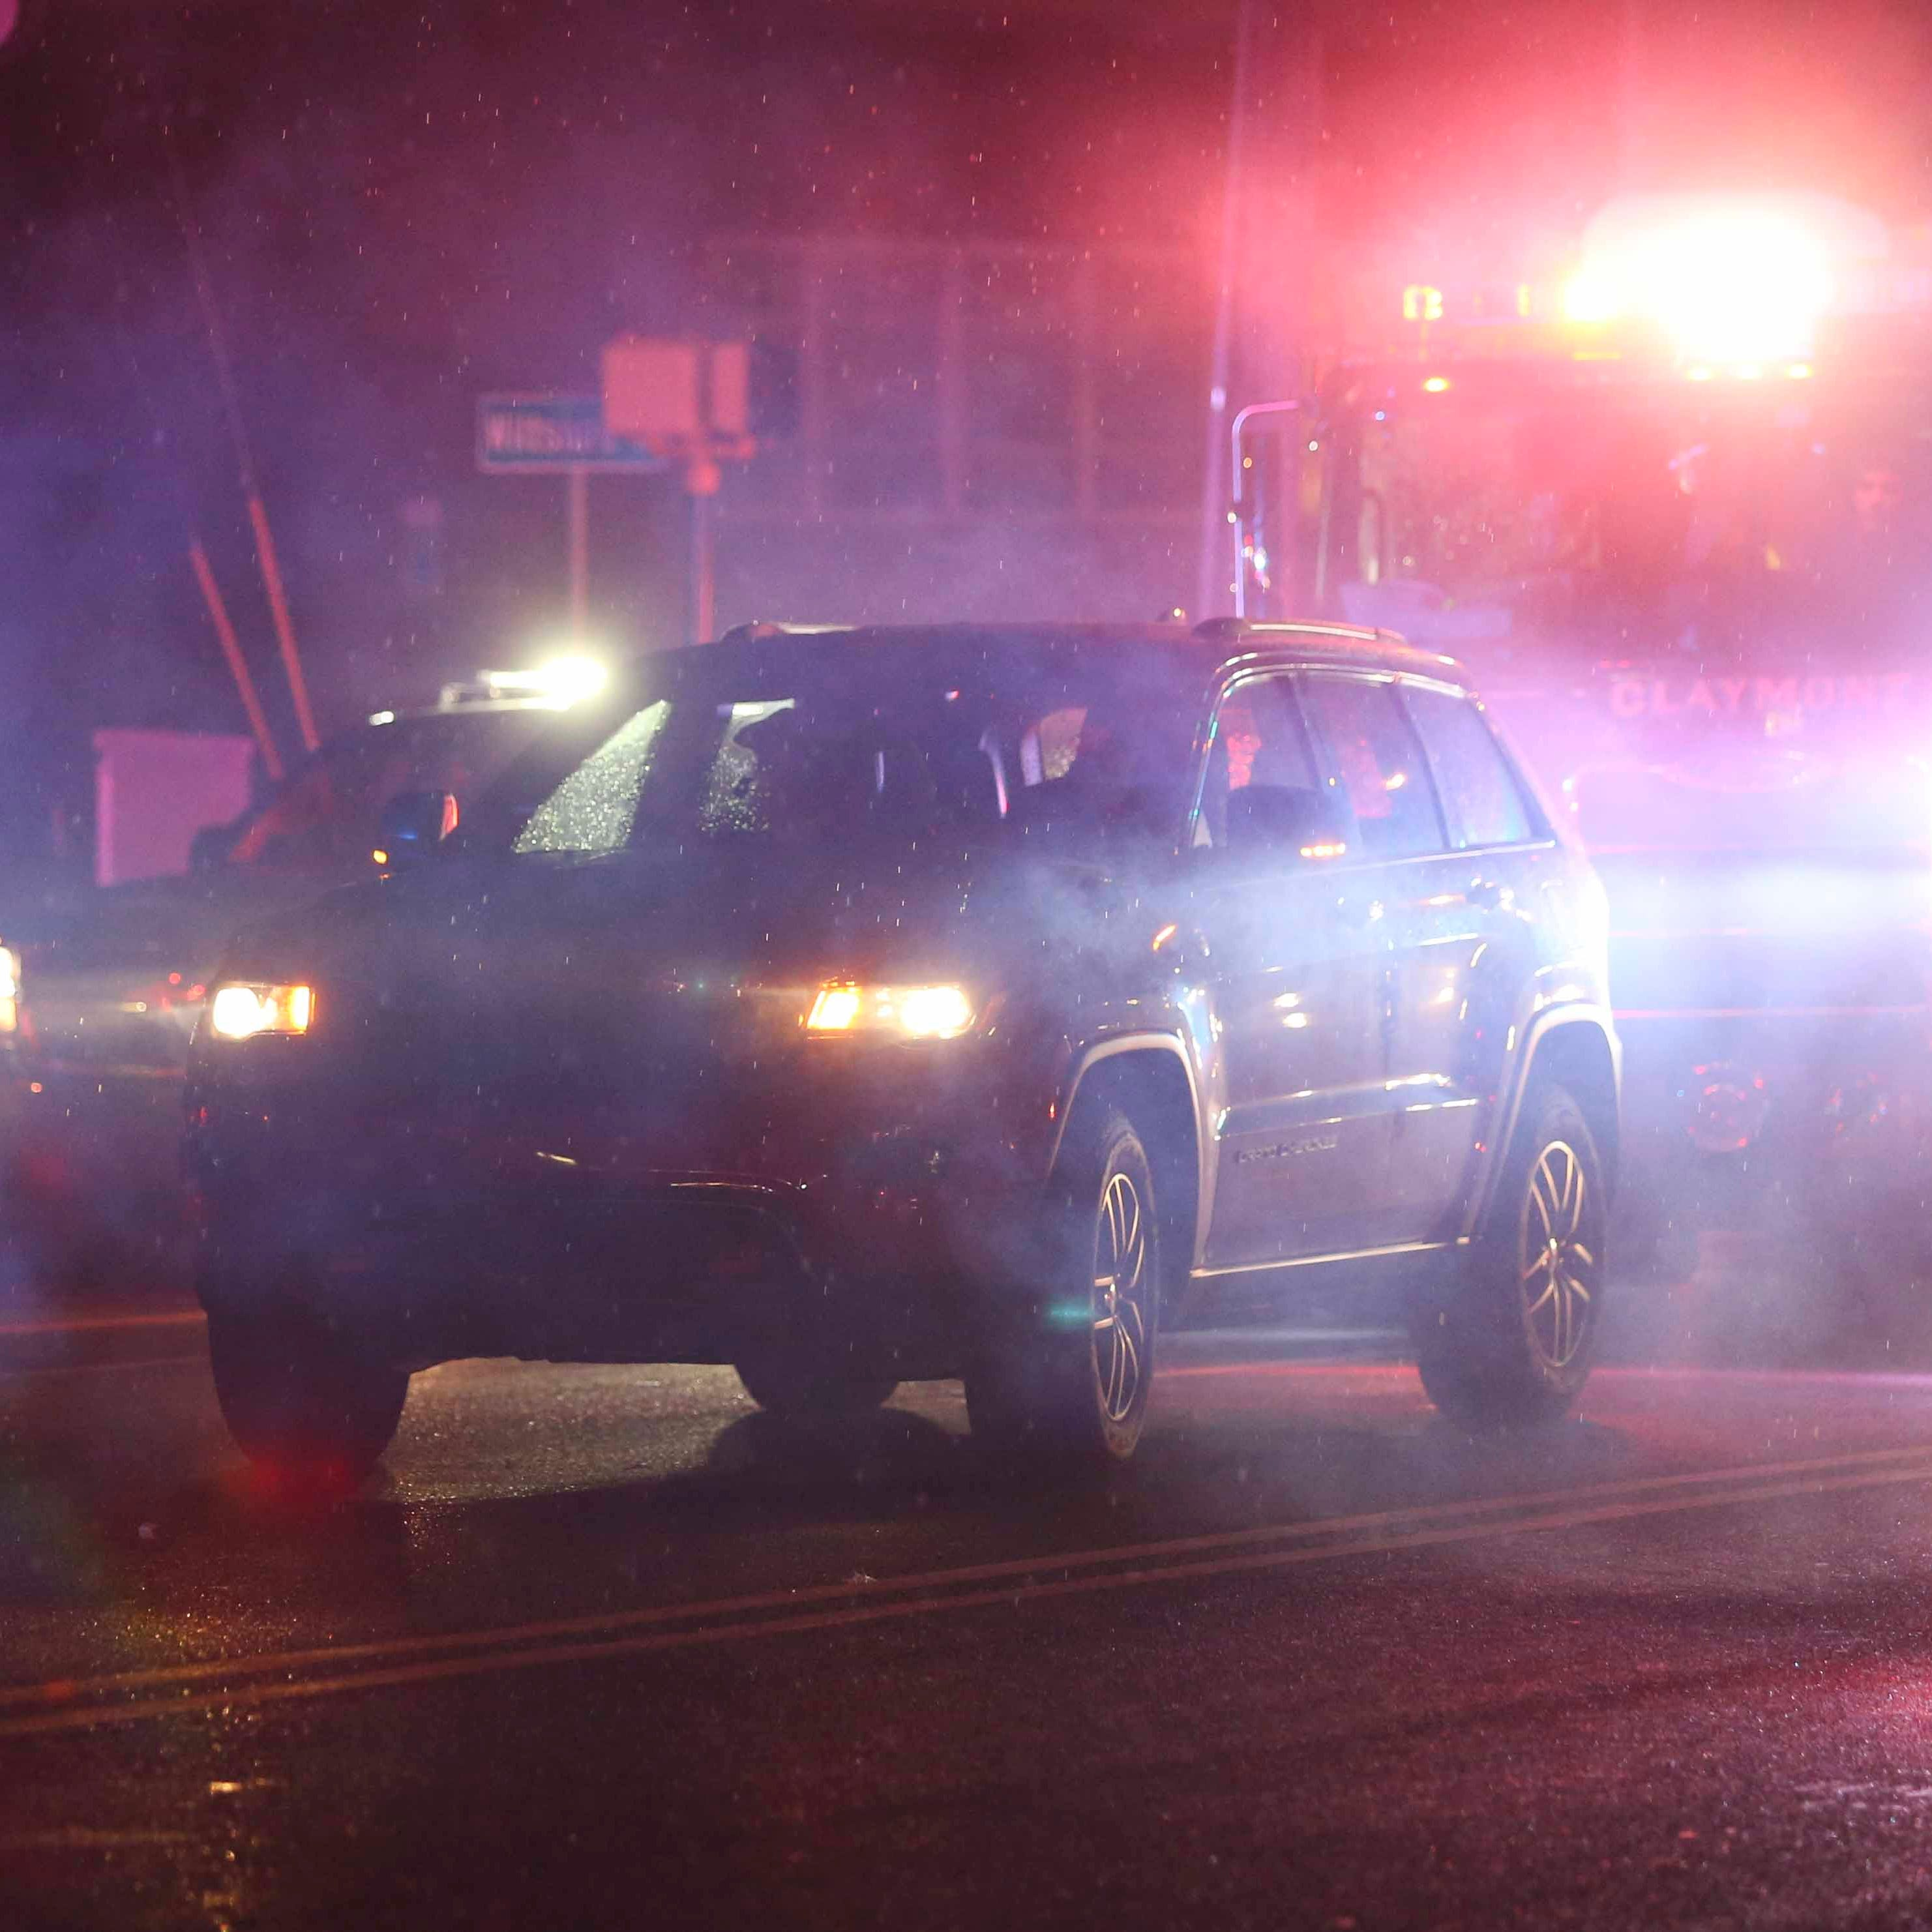 59-year-old Claymont pedestrian killed in crash